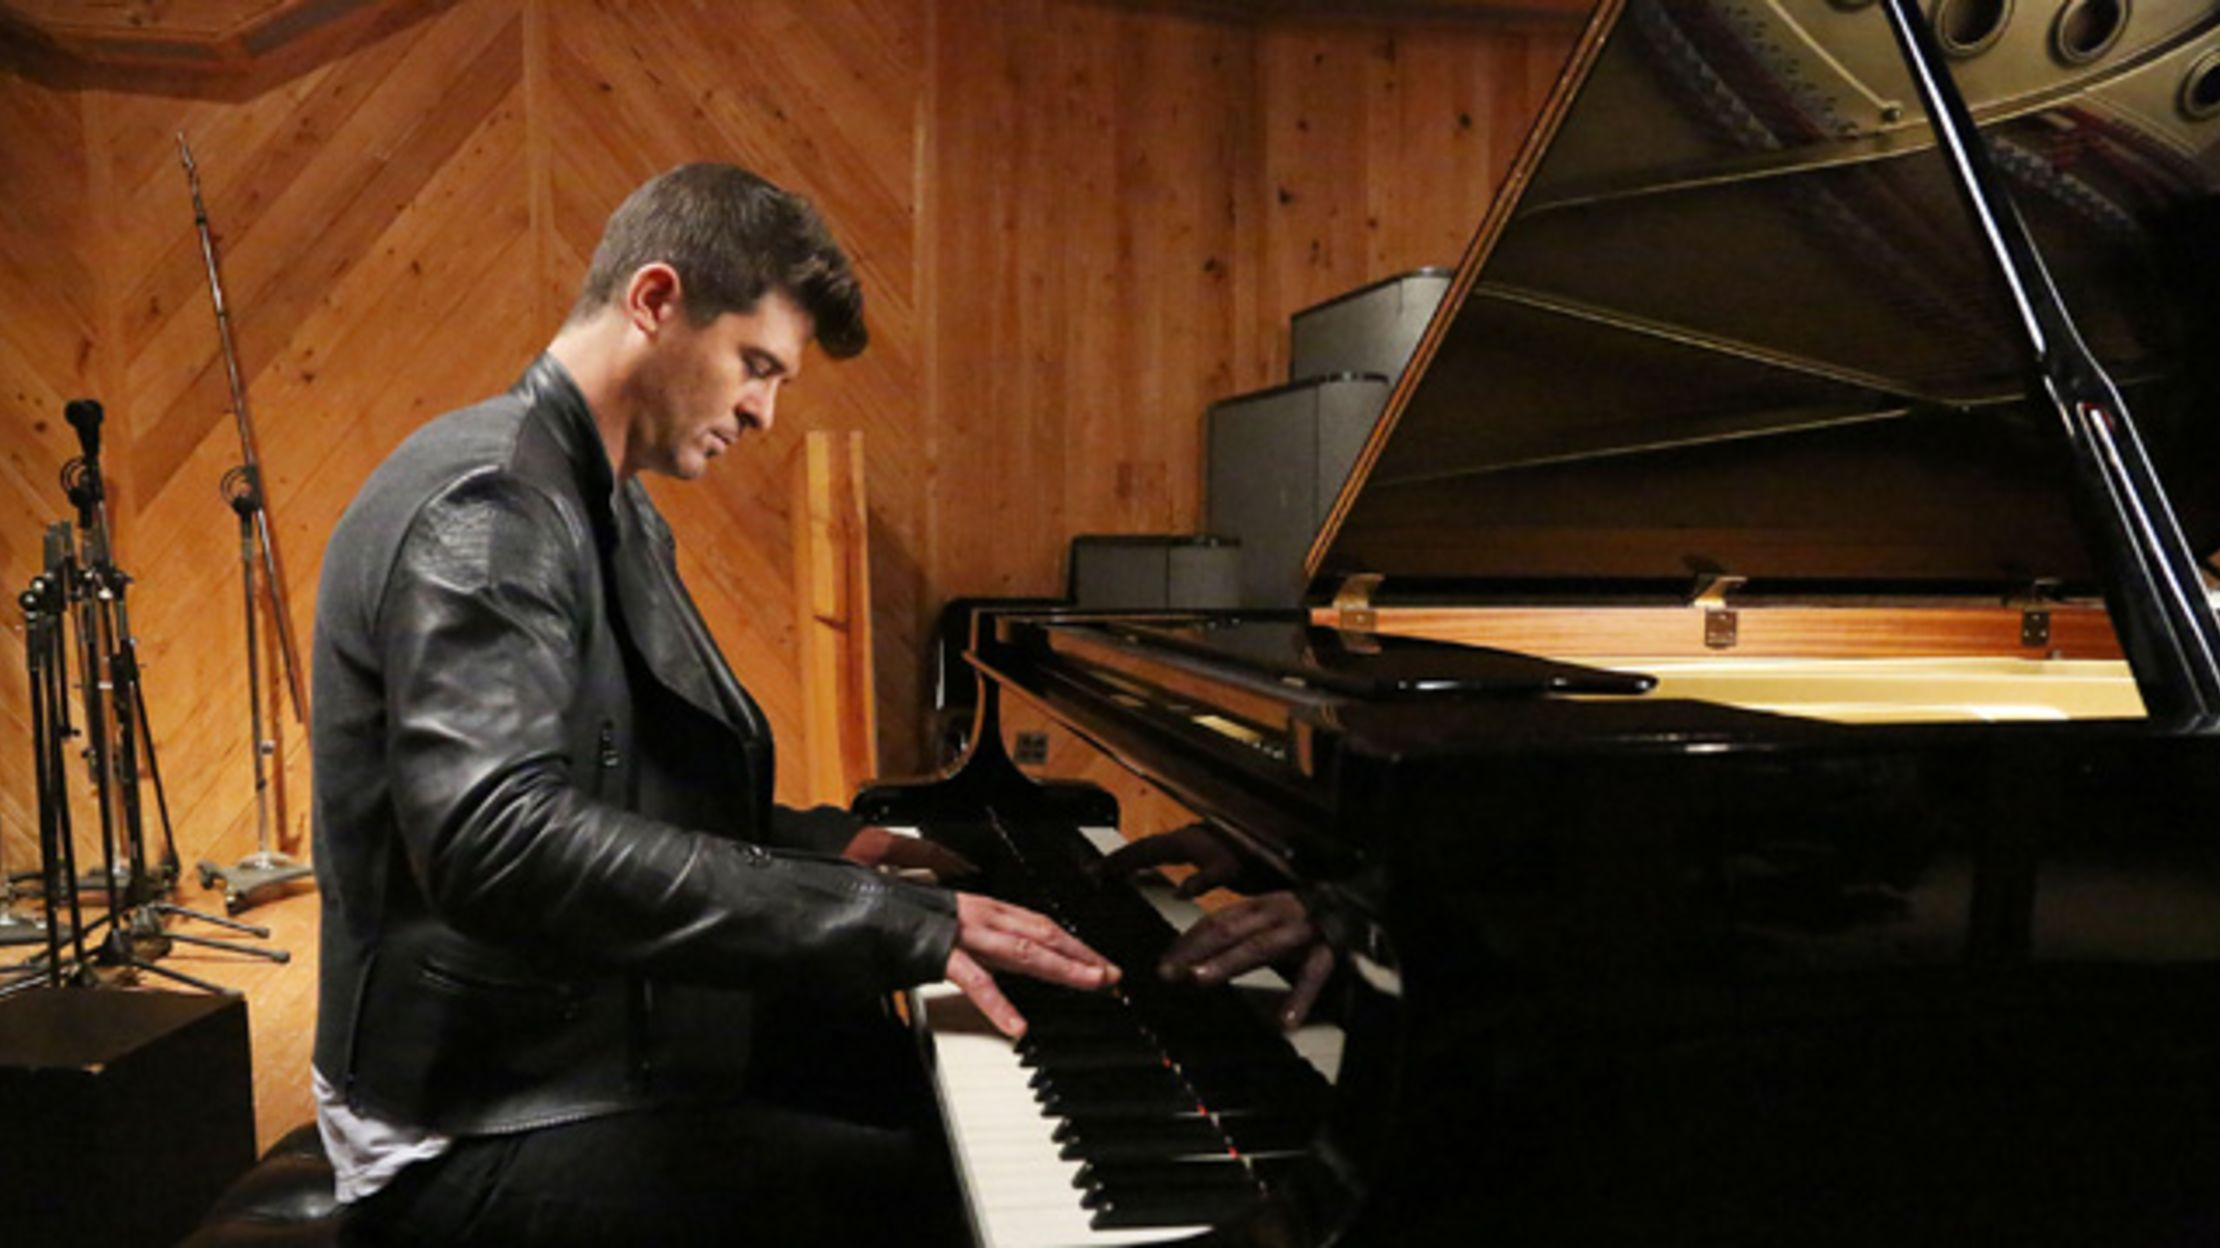 Blurred Lines, Indeed: 11 Artists Accused of Music Plagiarism